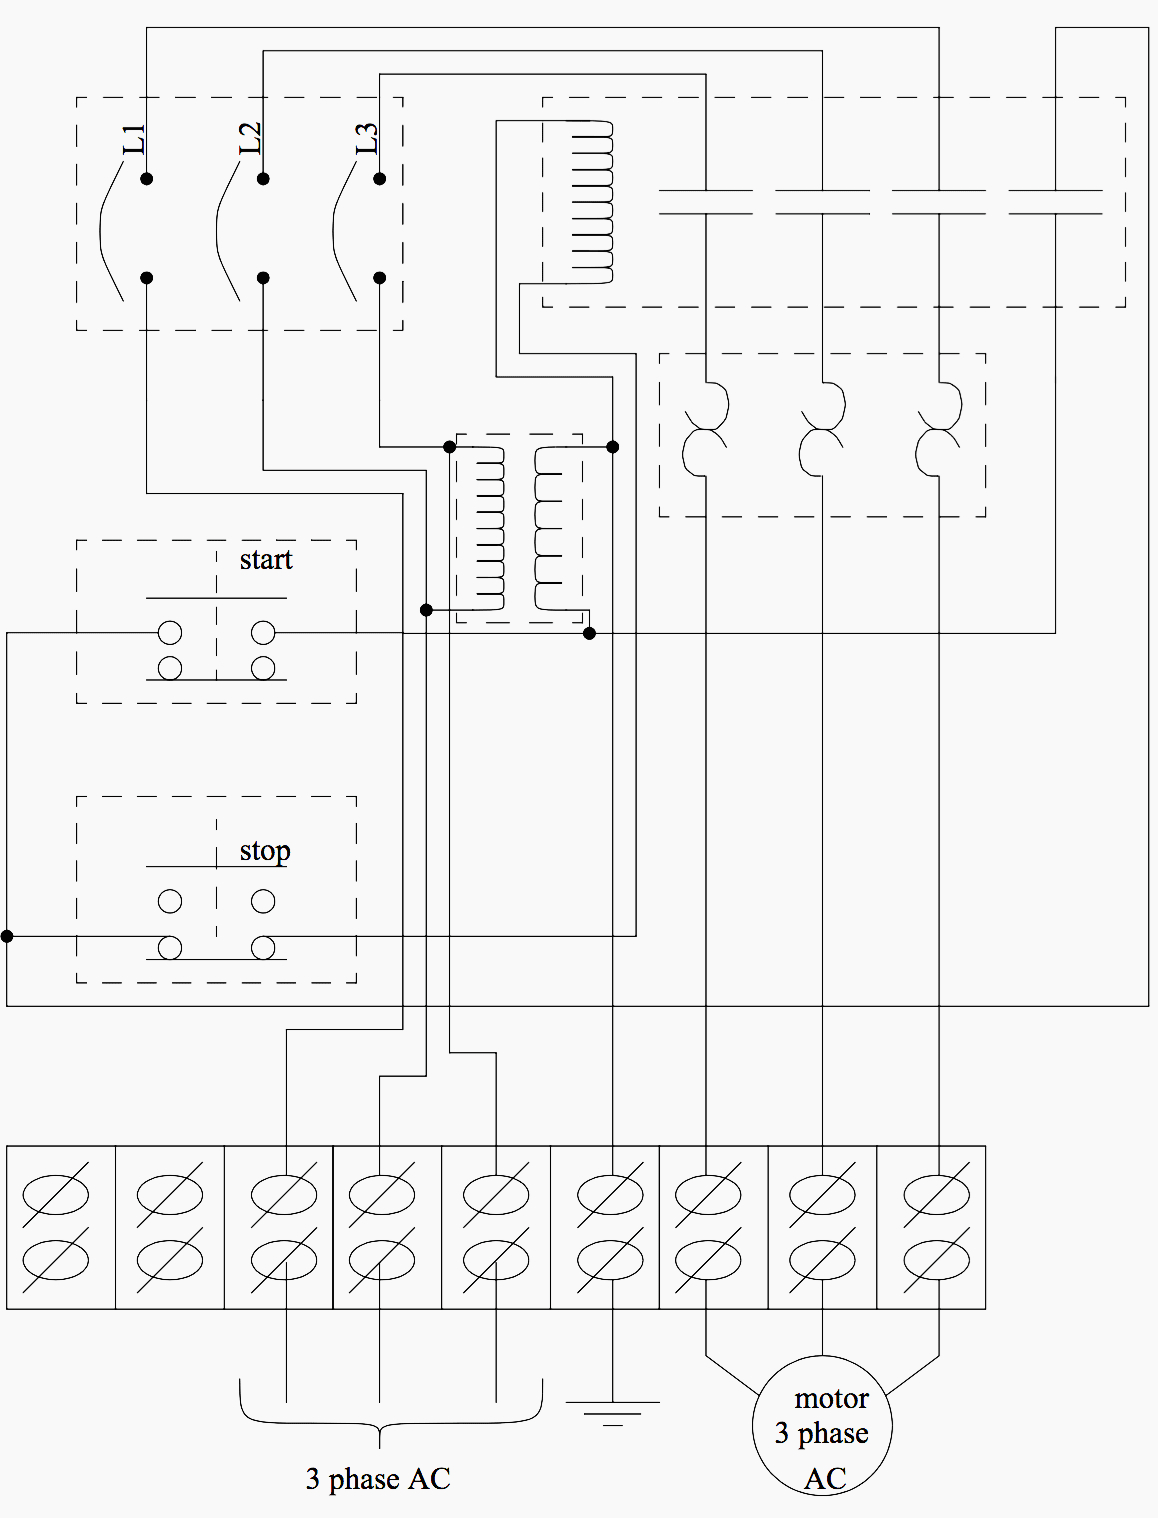 Basic Electrical Design Of A Plc Panel (Wiring Diagrams) | Eep - Plc Wiring Diagram